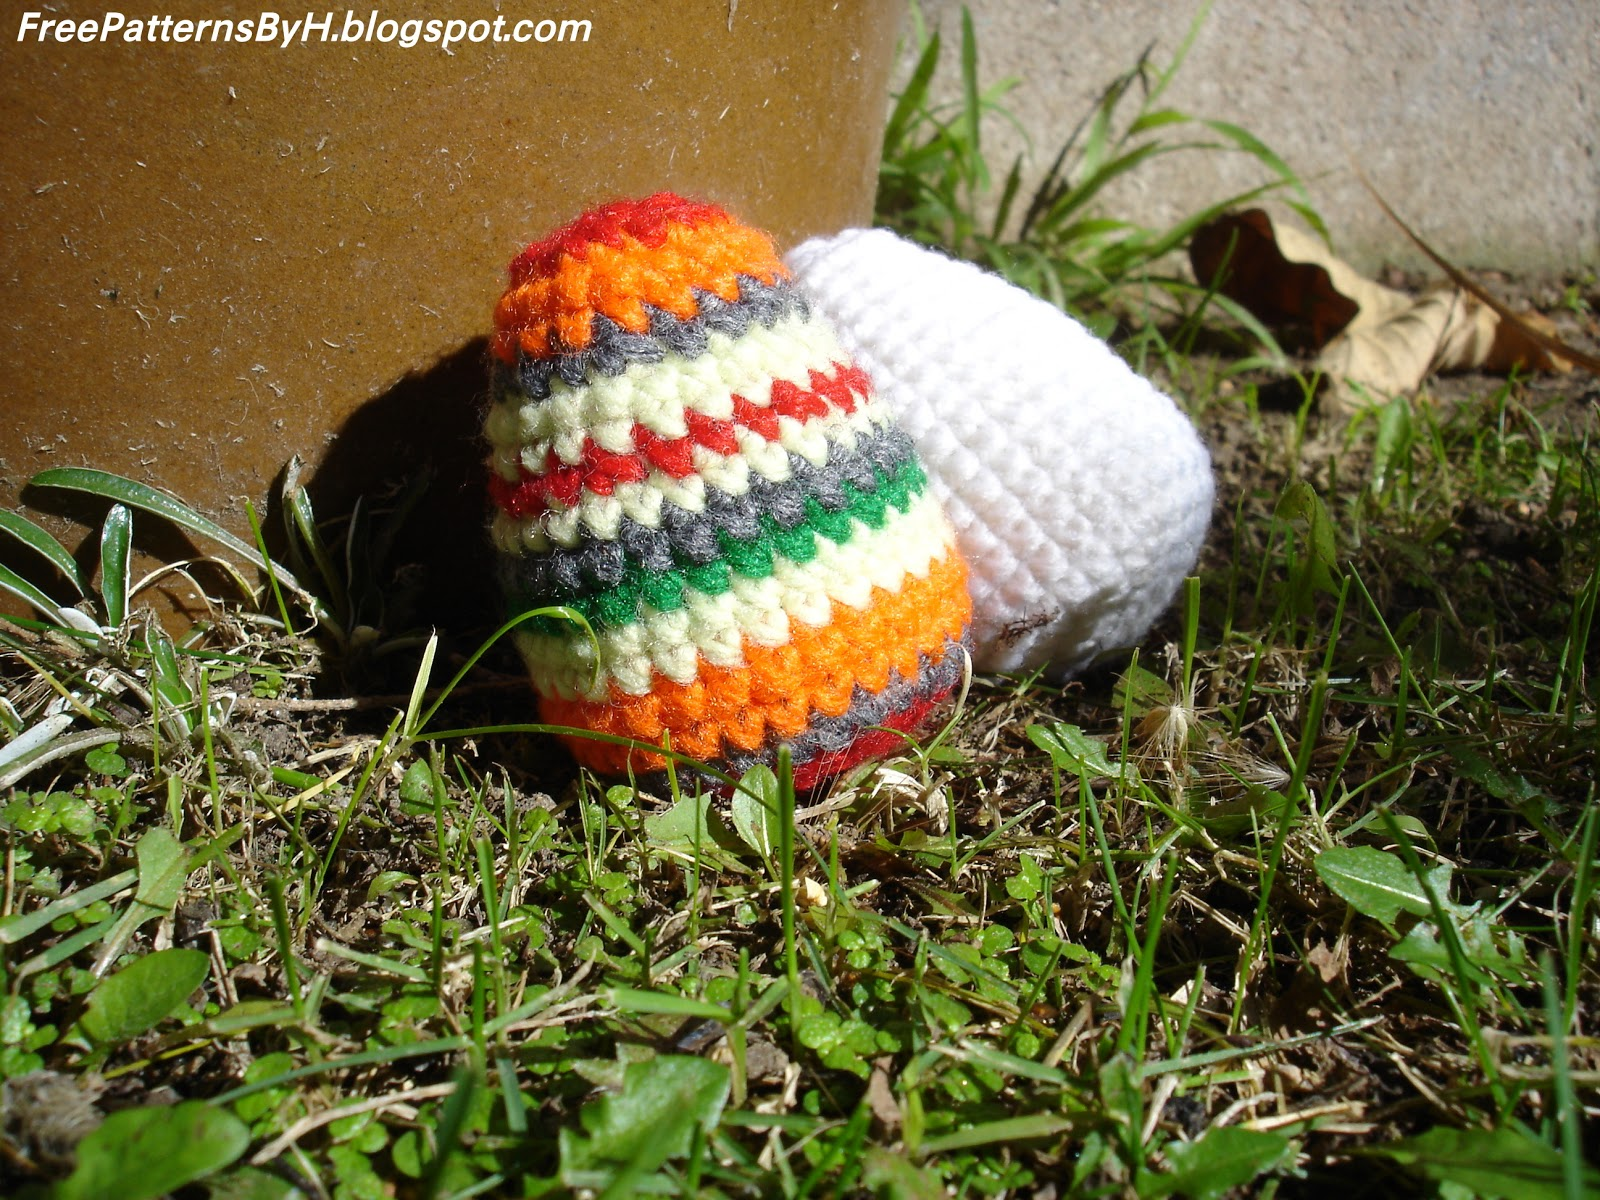 Amigurumi Easter Eggs Crochet Pattern : Free Patterns by H: Easter Egg Amigurumi